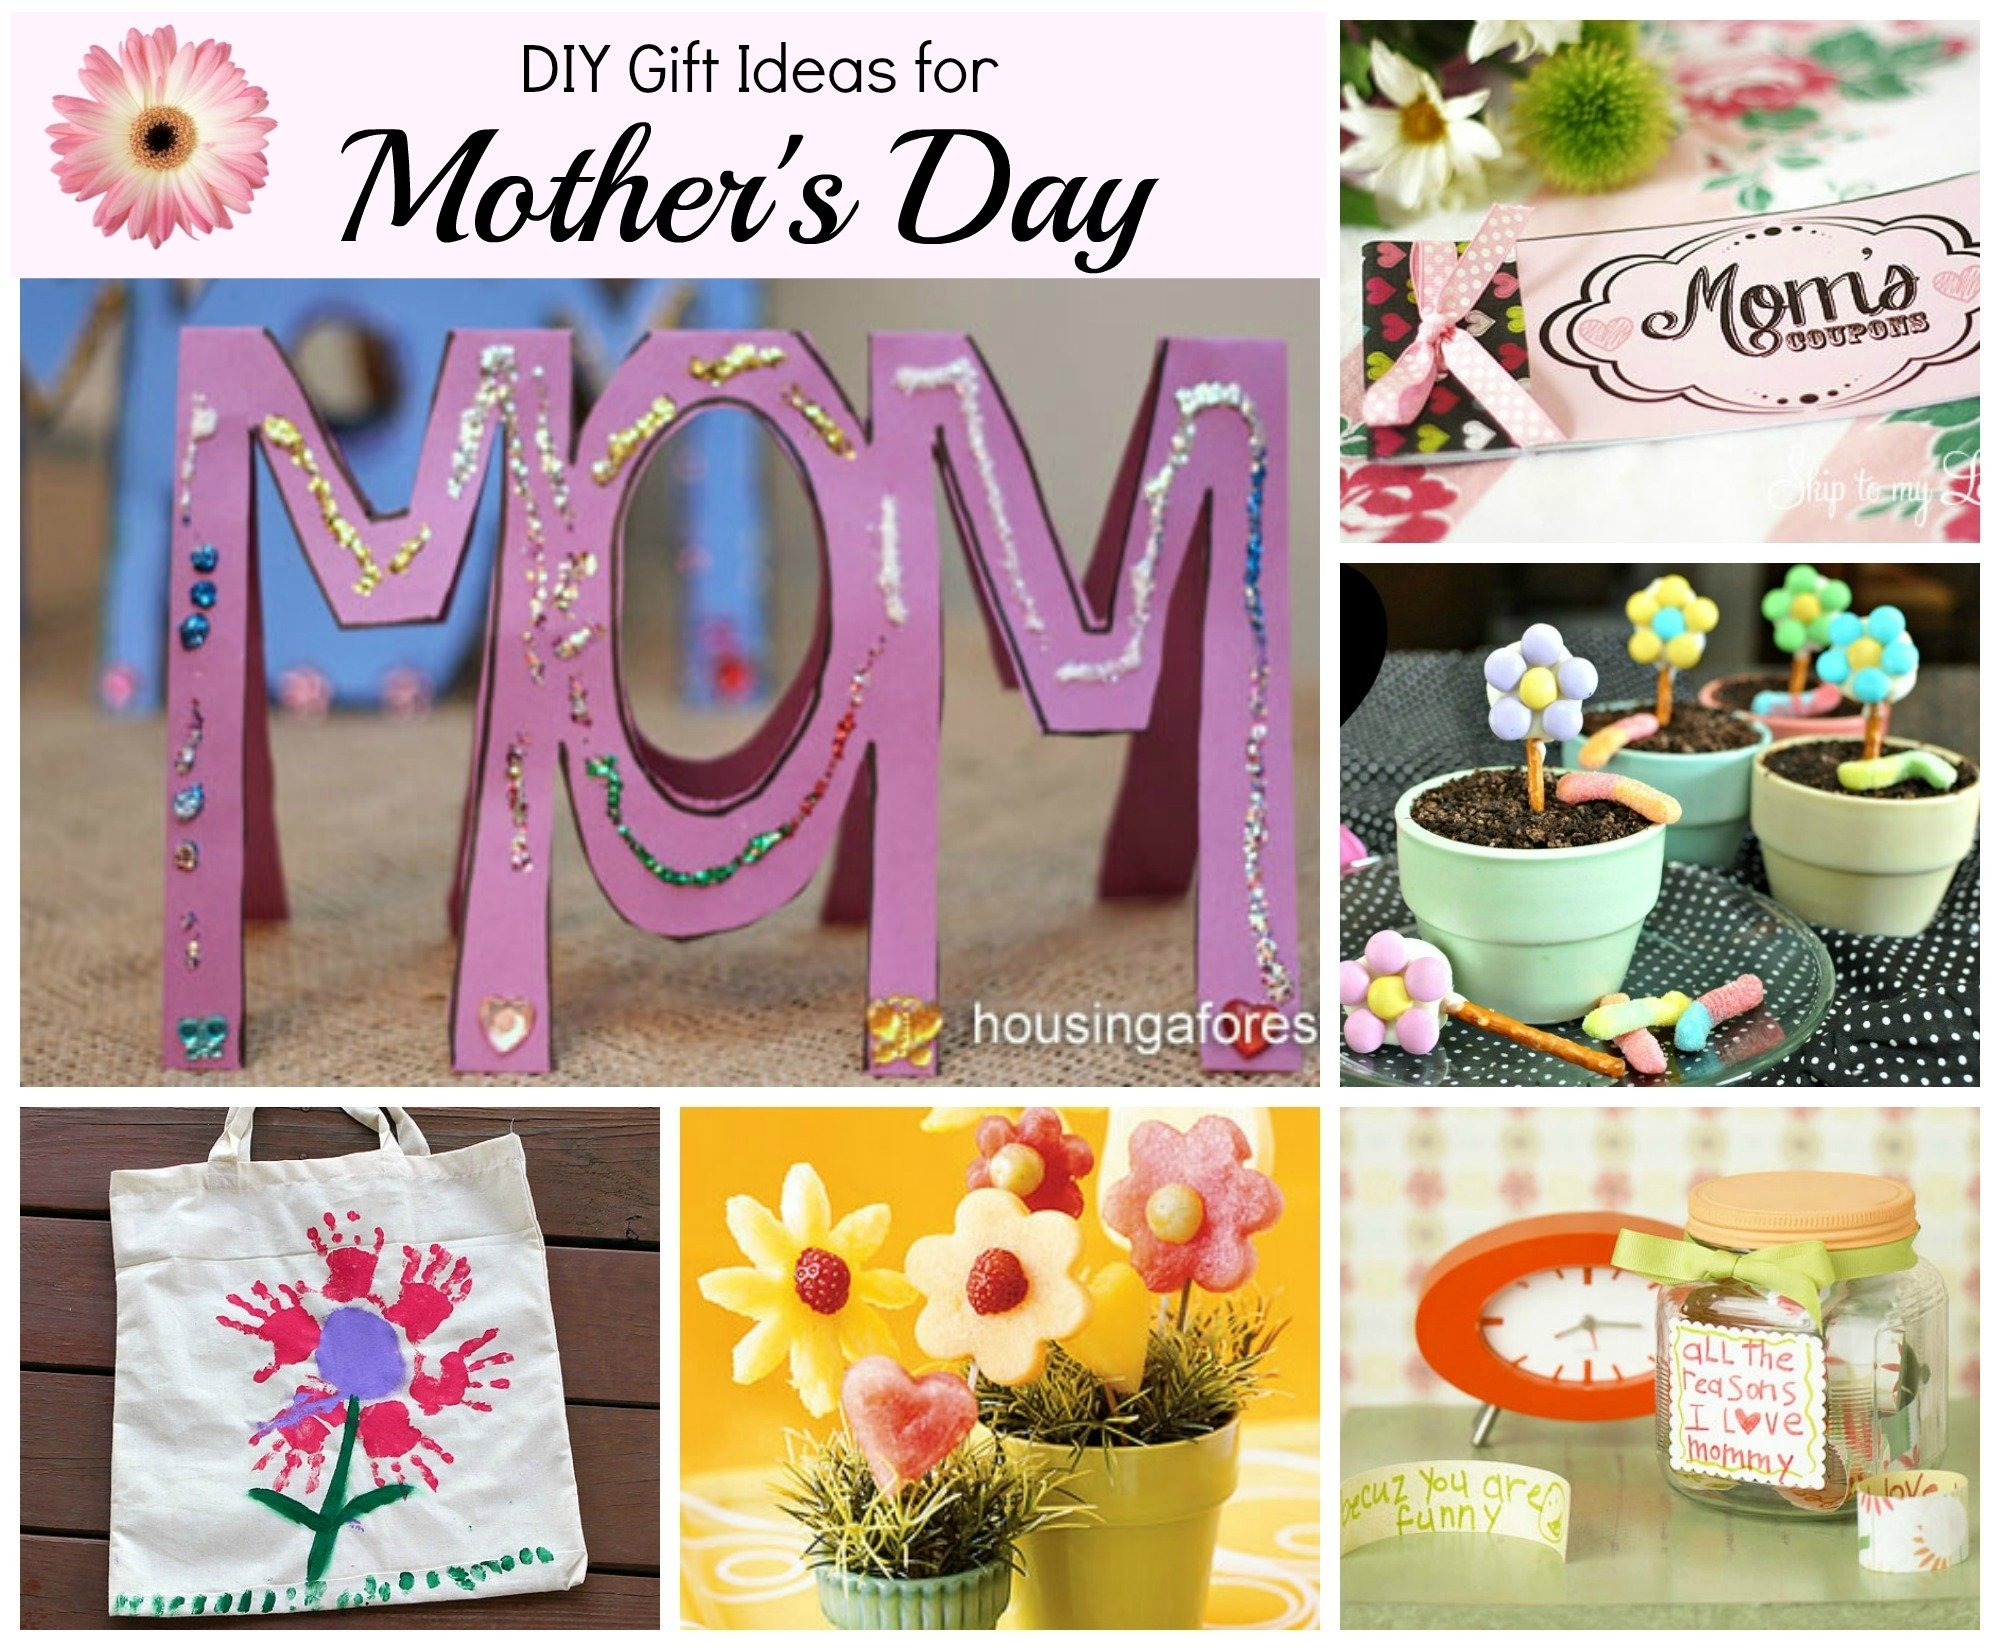 10 Awesome Diy Gift Ideas For Mom mothers day gift ideas celebrating holidays 3 2020